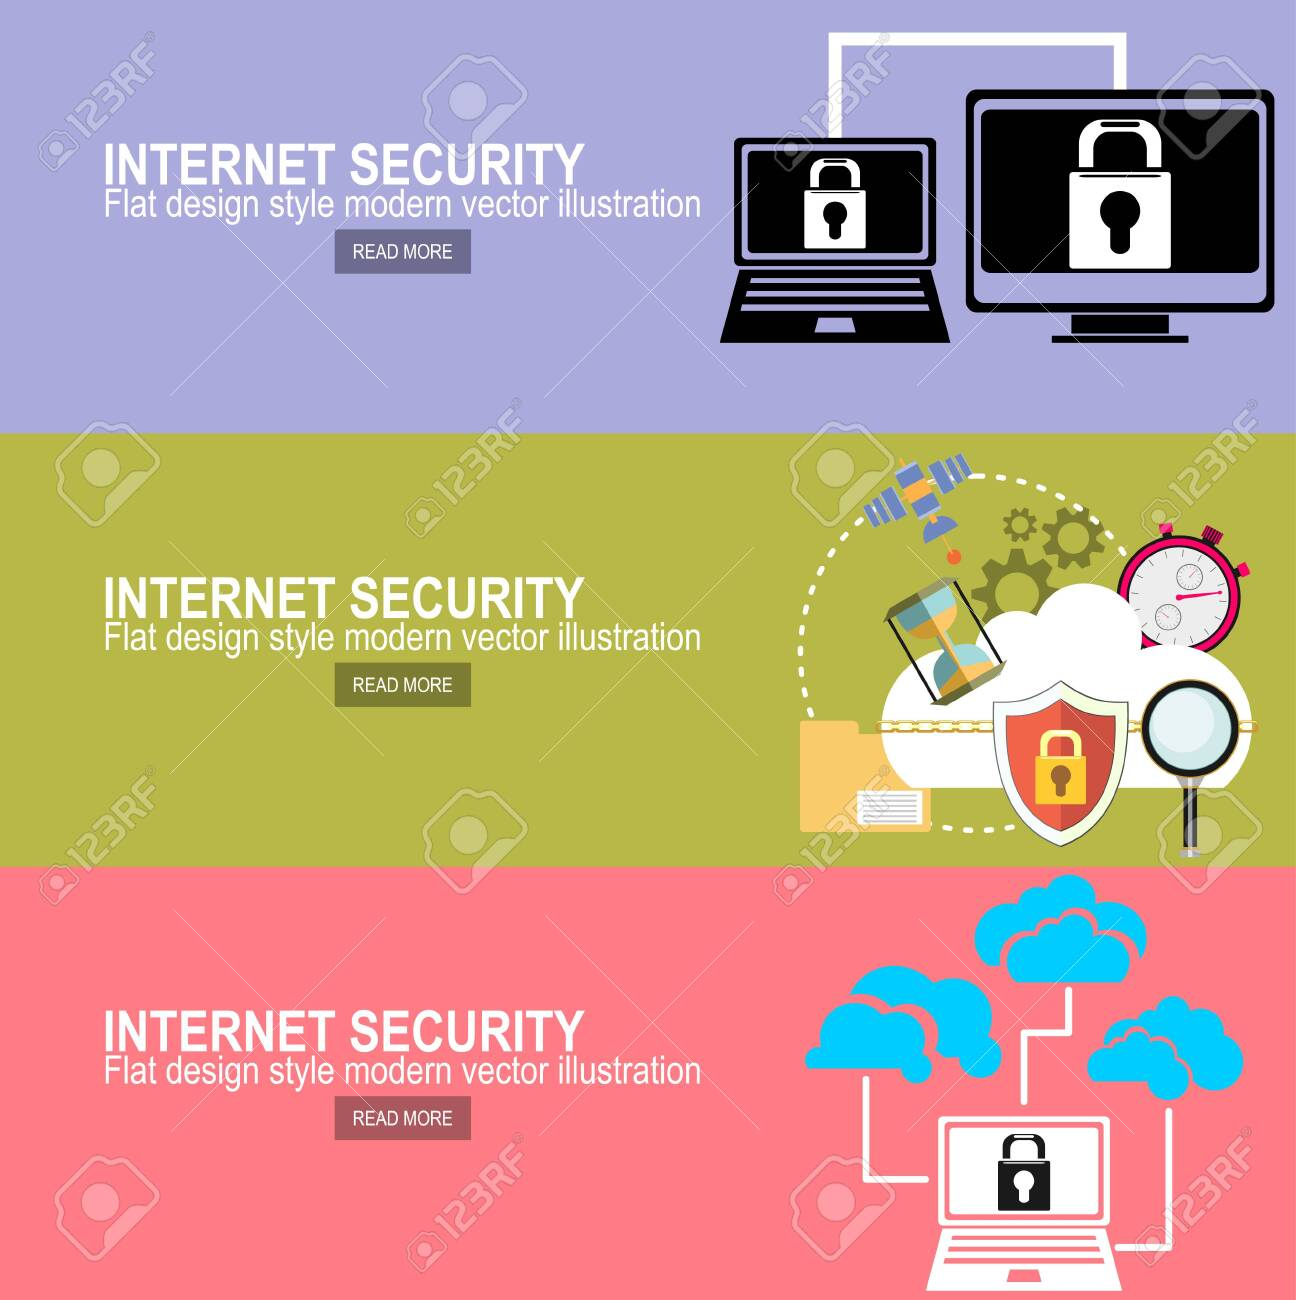 Internet security and data protection concept flat vector illustration - 135611260